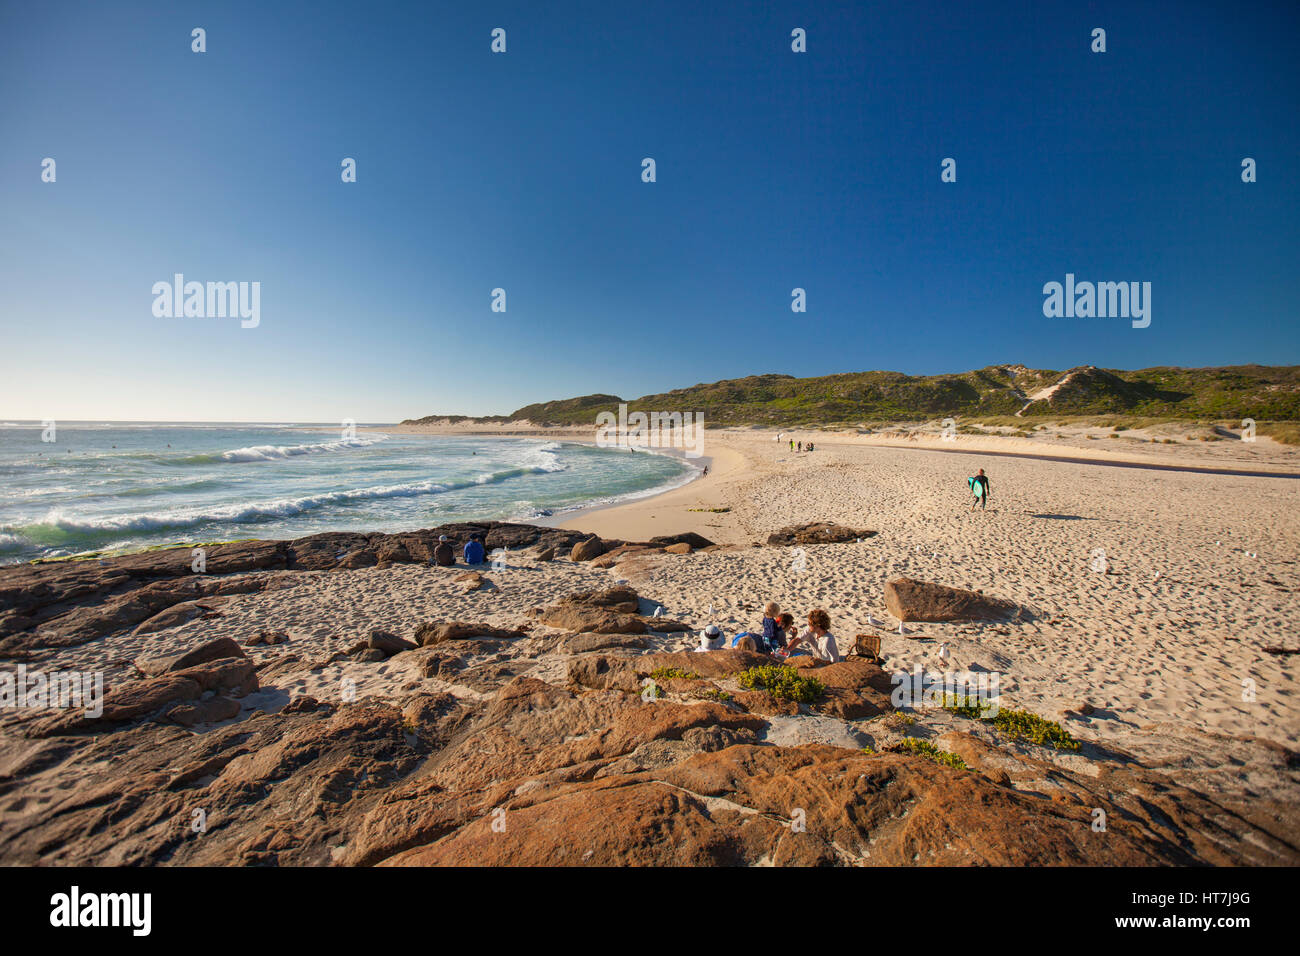 Prevelly Beach As Seen From Surfer's Point In Margaret River, Western Australia Stock Photo